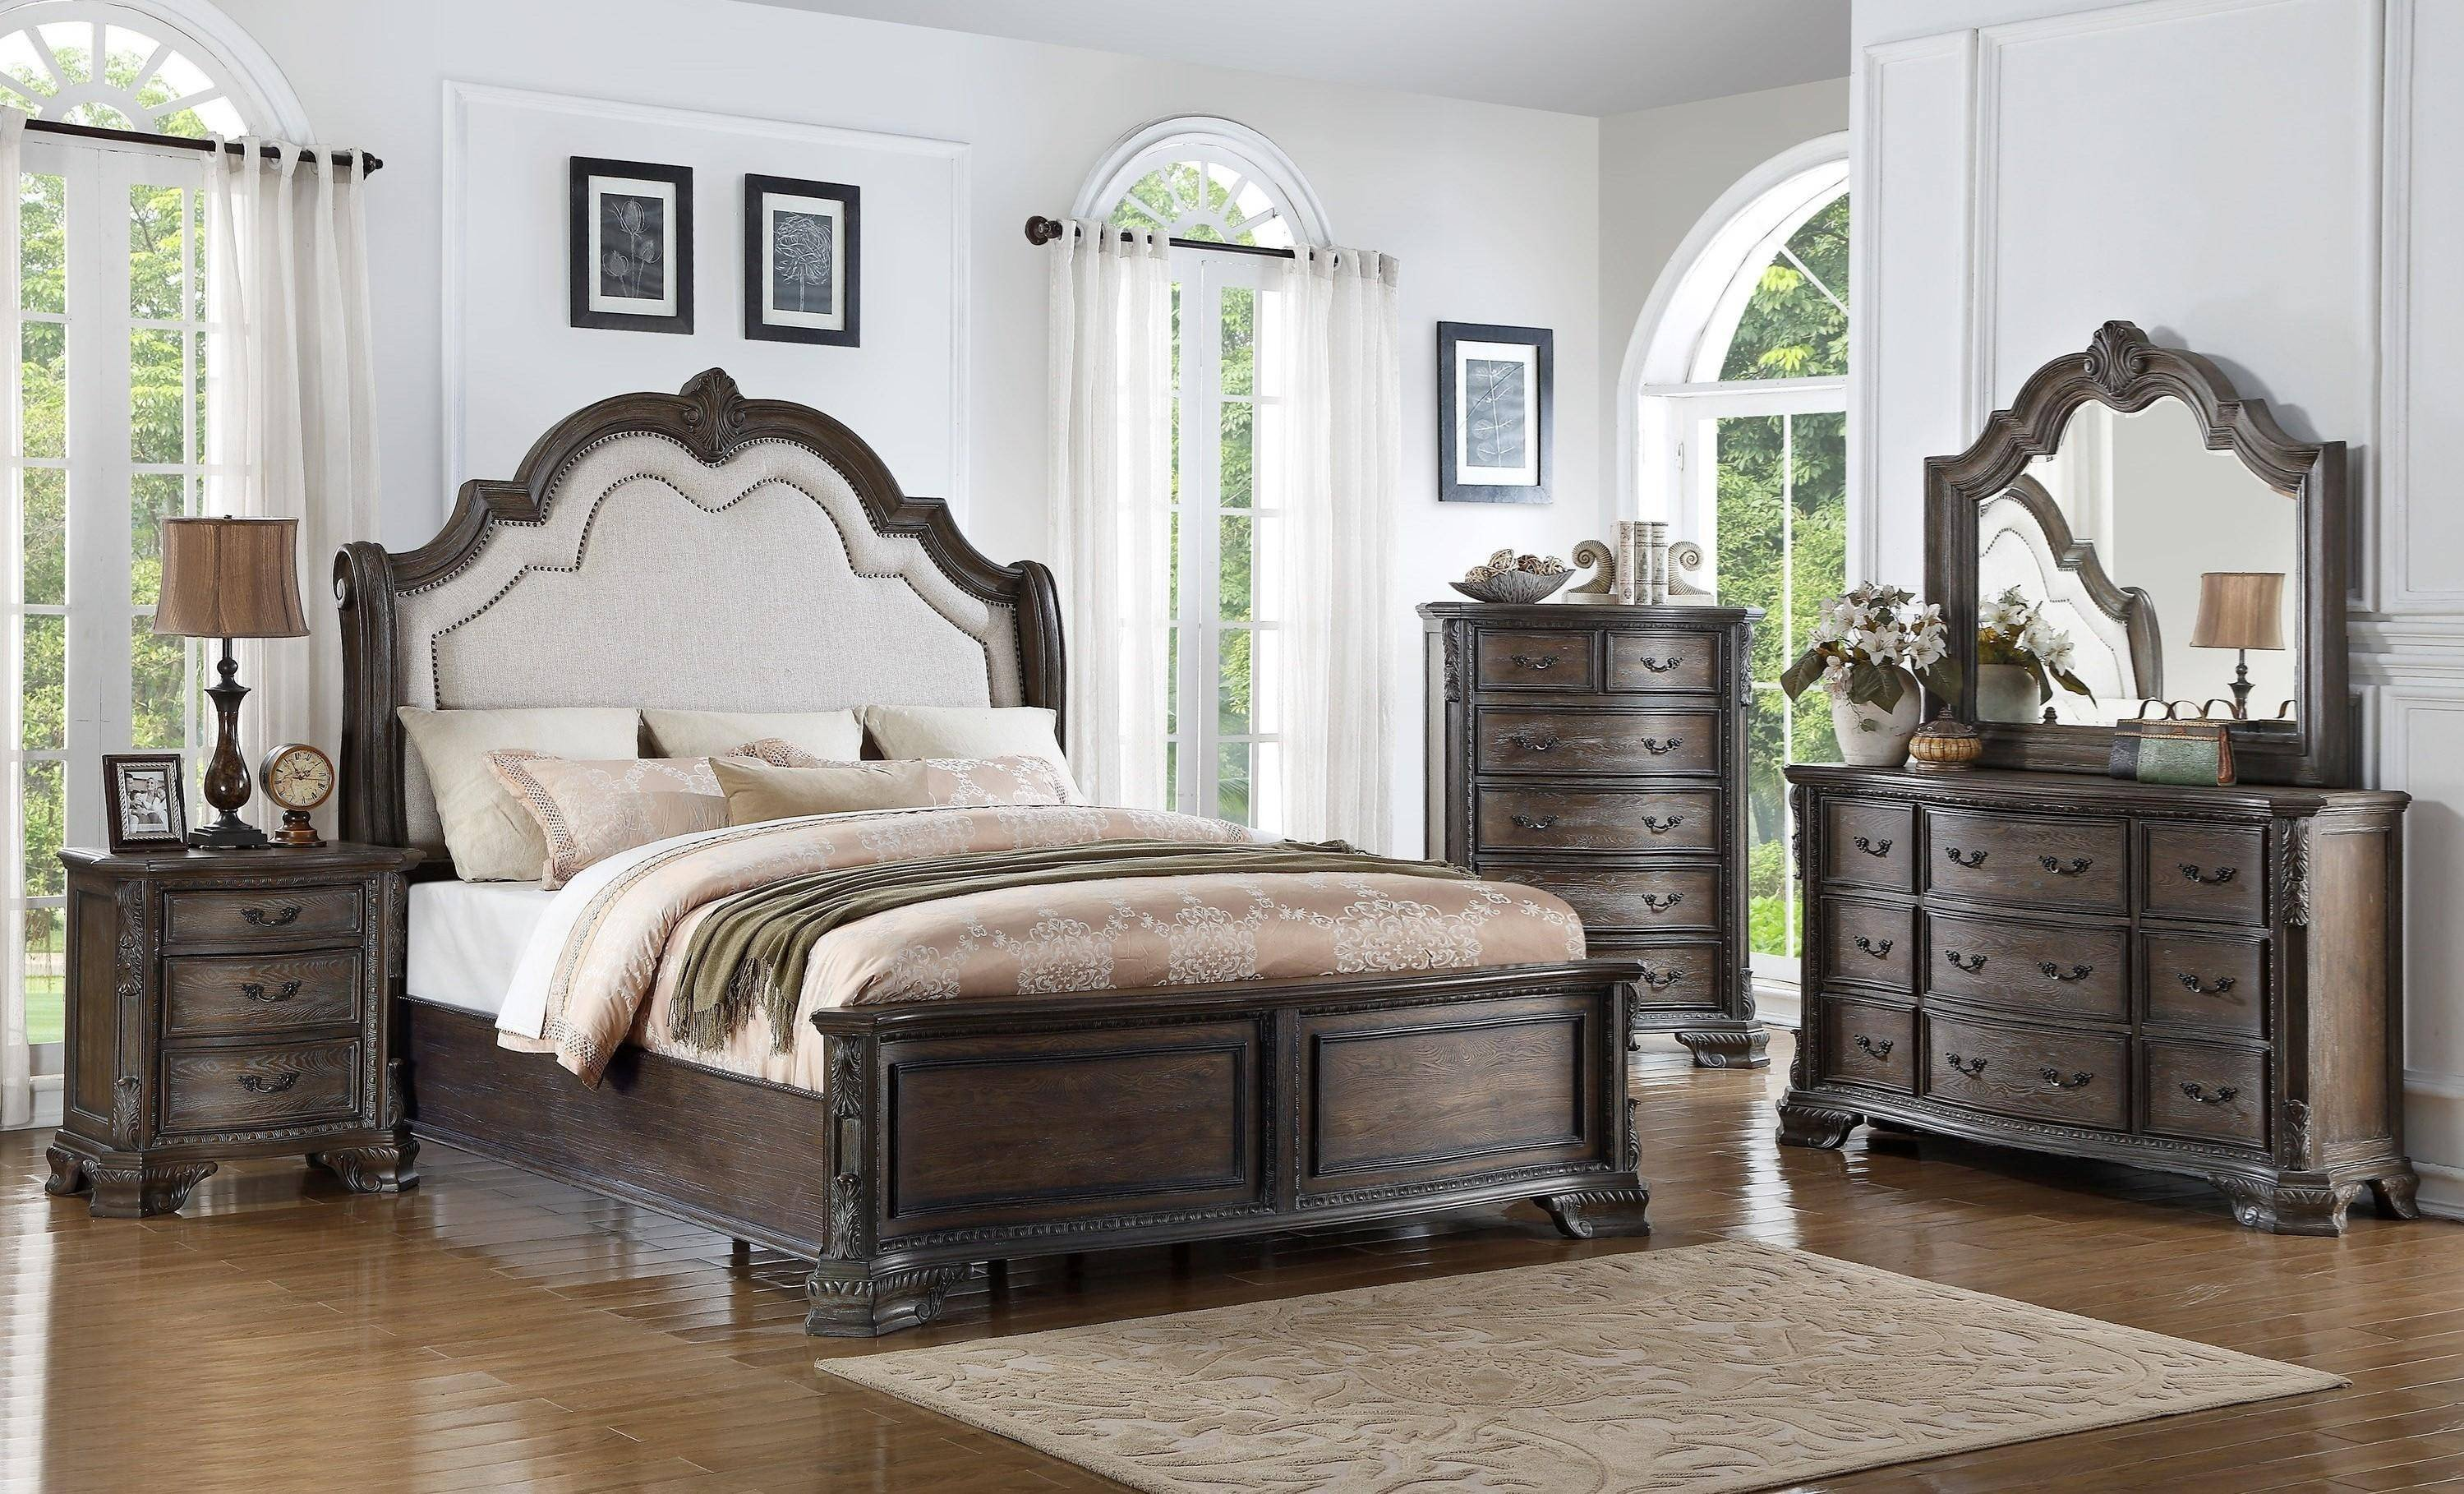 King Bedroom Set for Sale Best Of Crown Mark B1120 Sheffield Queen Panel Bed In Gray Fabric